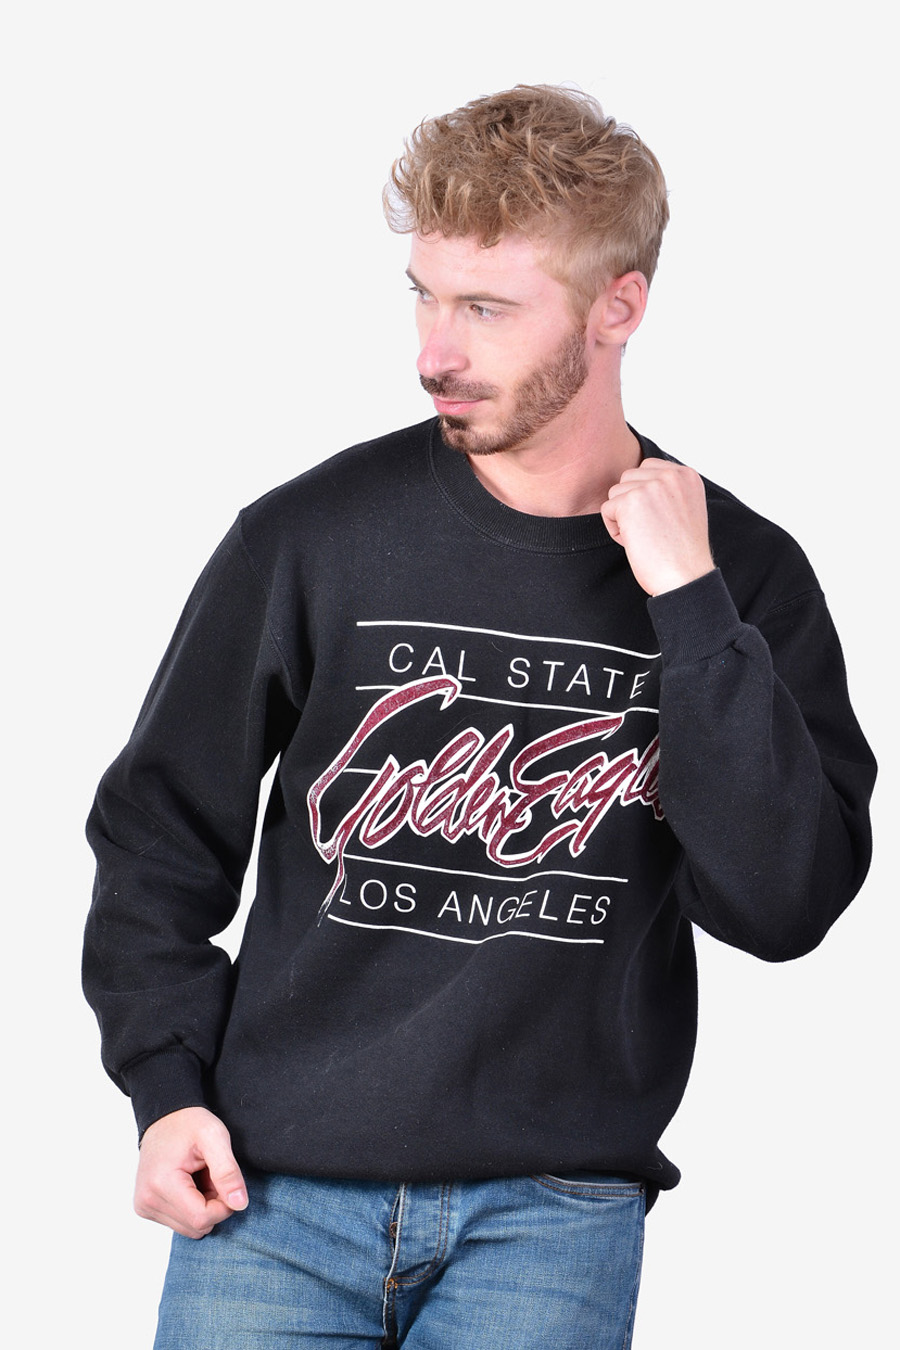 Vintage Cal State Golden Eagles sweatshirt